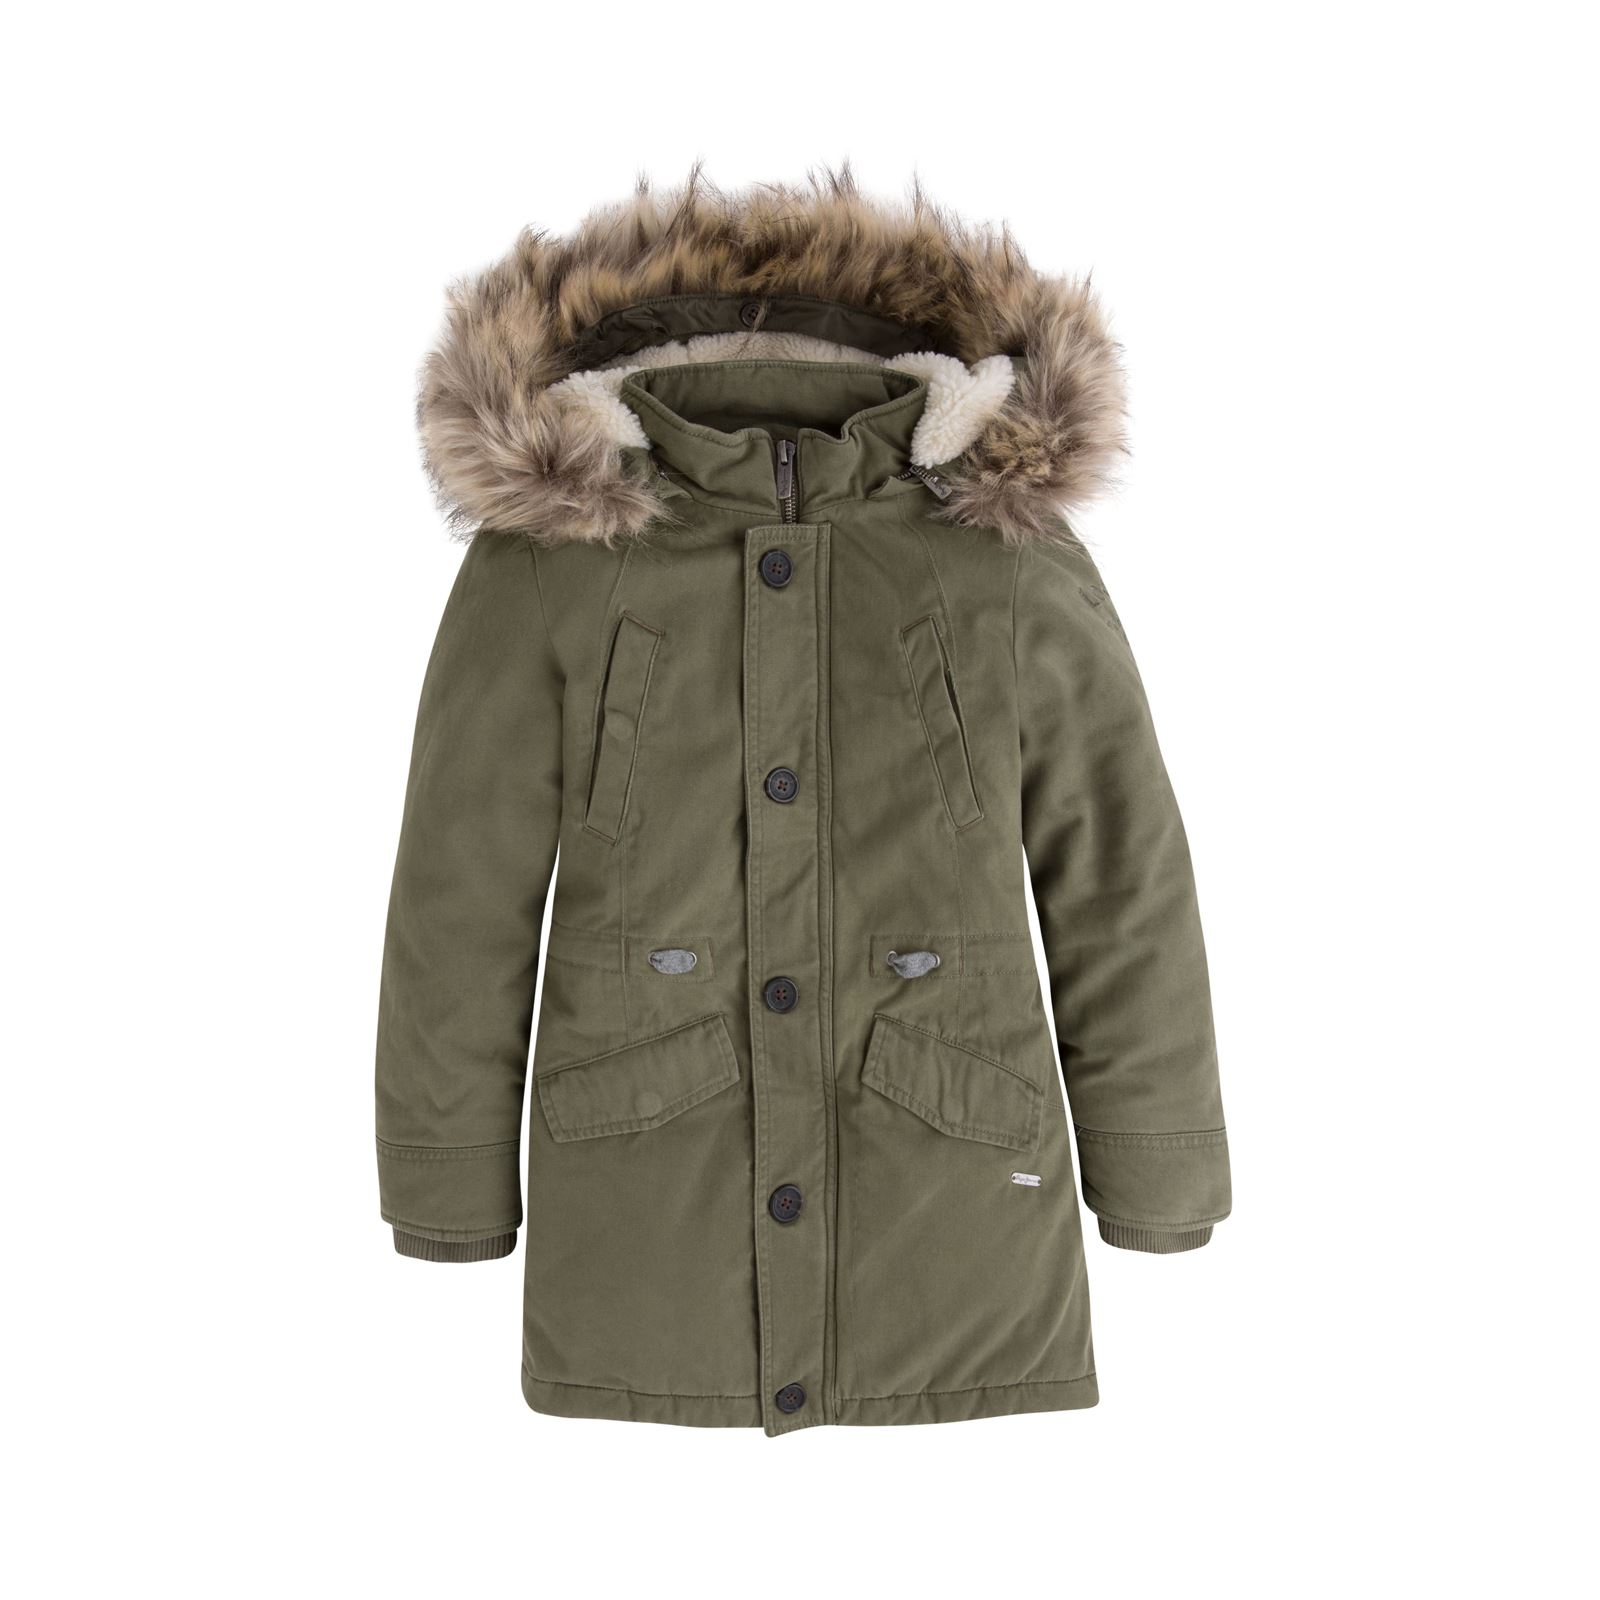 Pepe Jeans London Ruben JR - Manteau casual - kaki